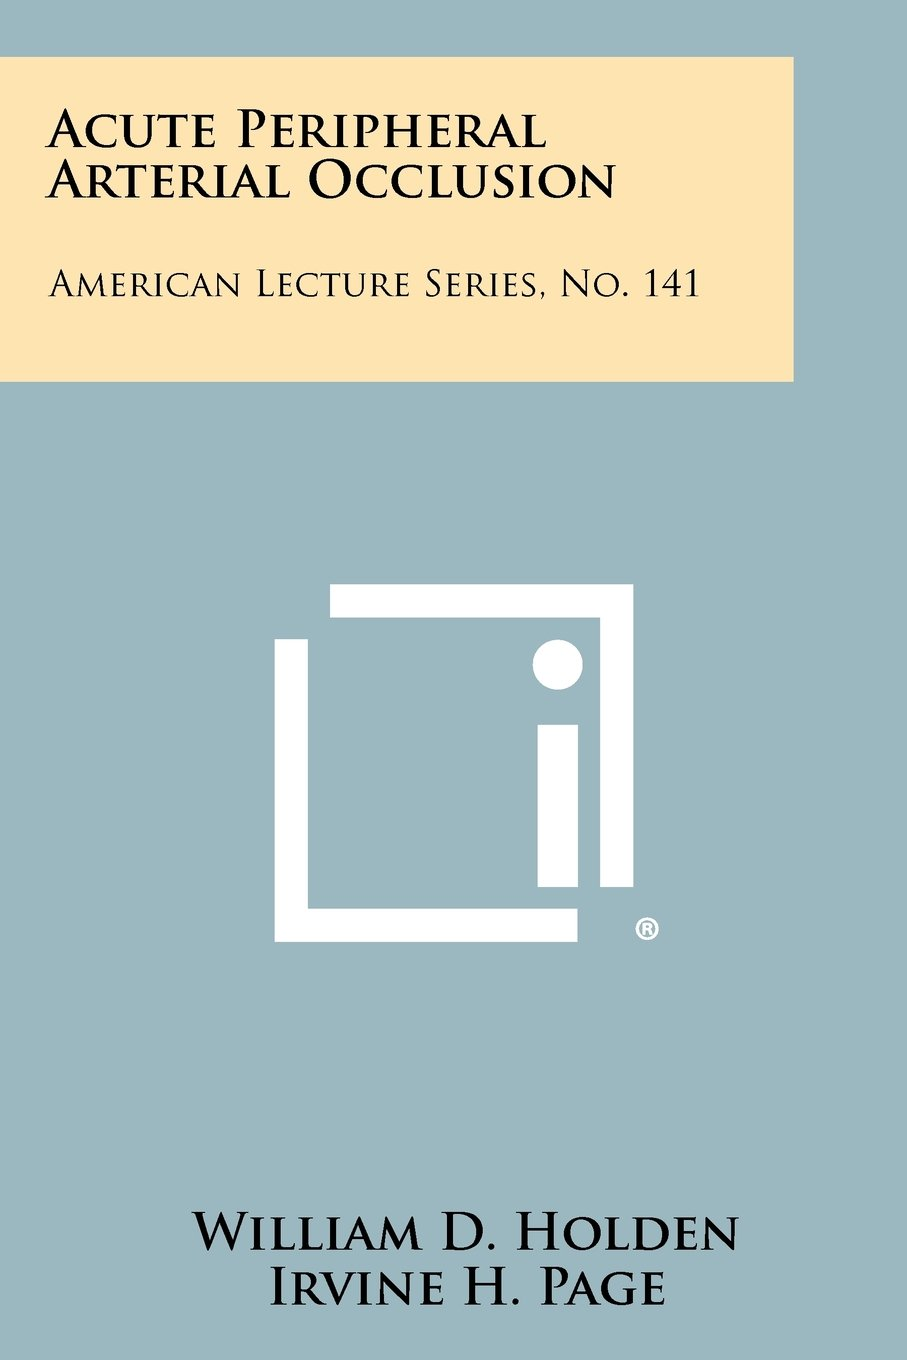 Read Online Acute Peripheral Arterial Occlusion: American Lecture Series, No. 141 ebook